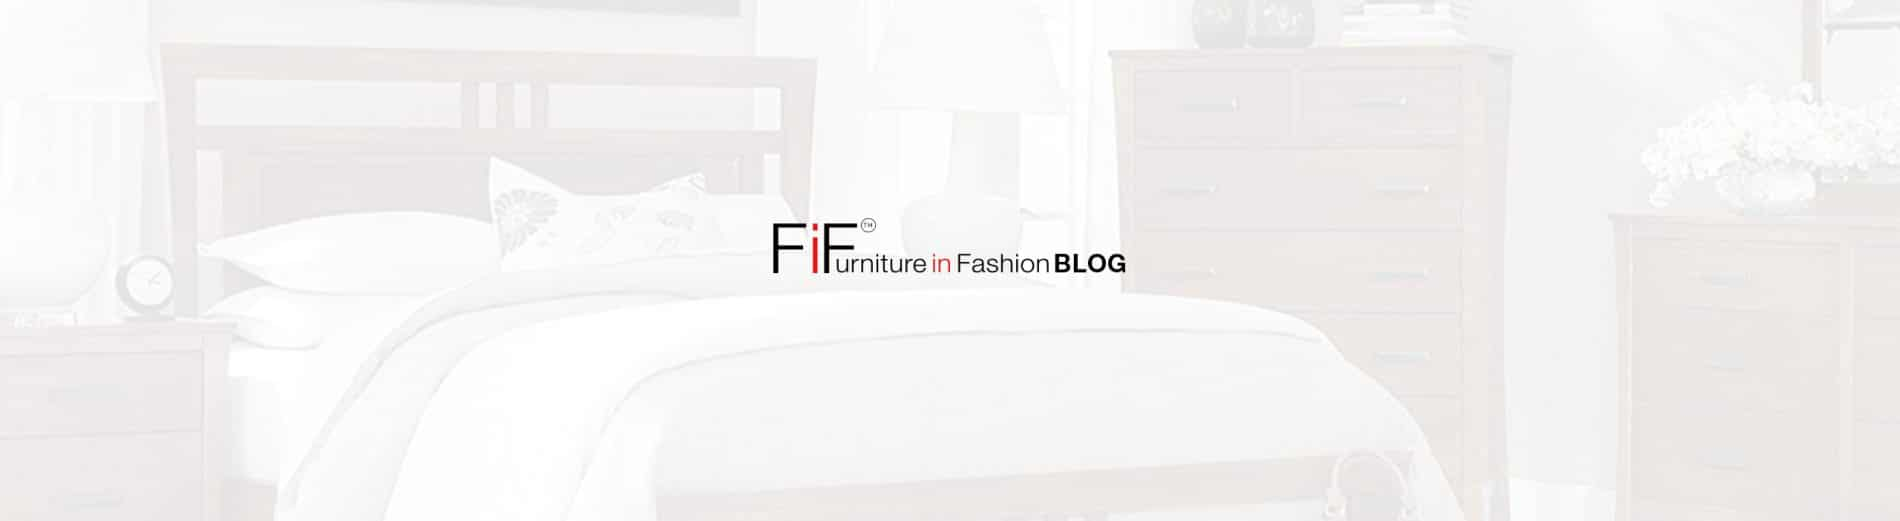 FIF Blog H 1900x521 - Nightclub Furniture Design. Does It Need To Look Good In The Dark?